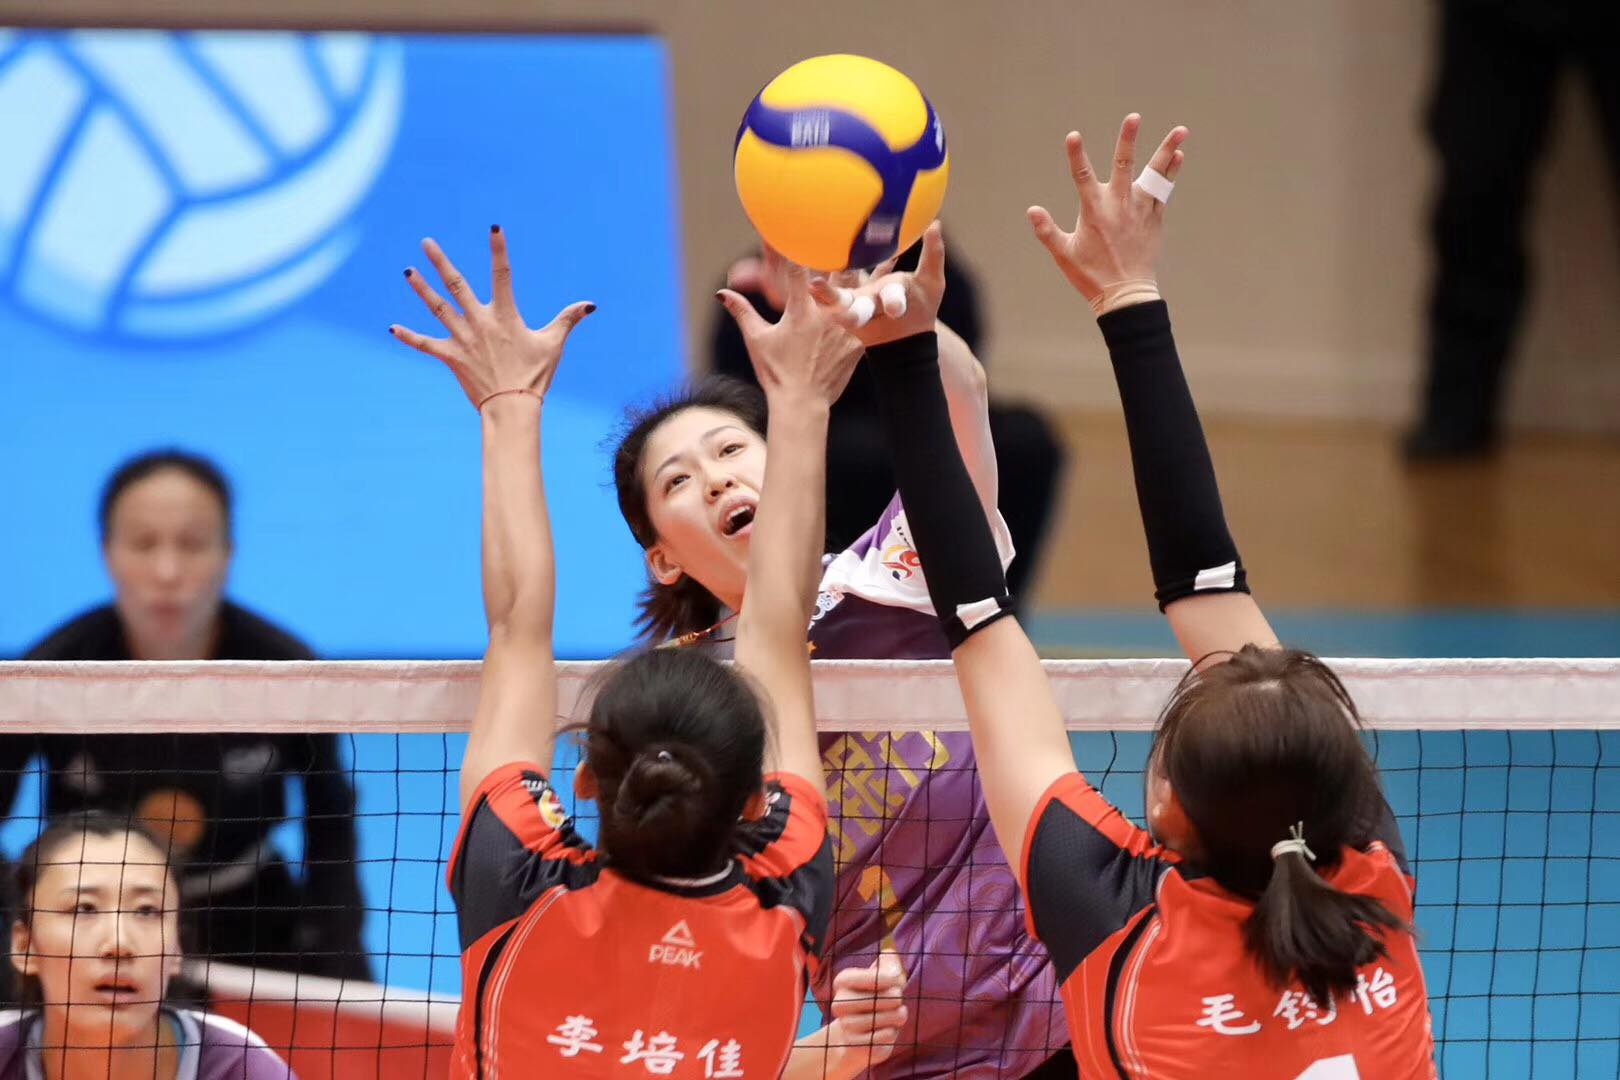 LI YINGYING AIMS TO SHOWCASE TALENT AGAINST BEST TEAMS IN WOMEN'S CLUB WORLD CHAMPIONSHIP